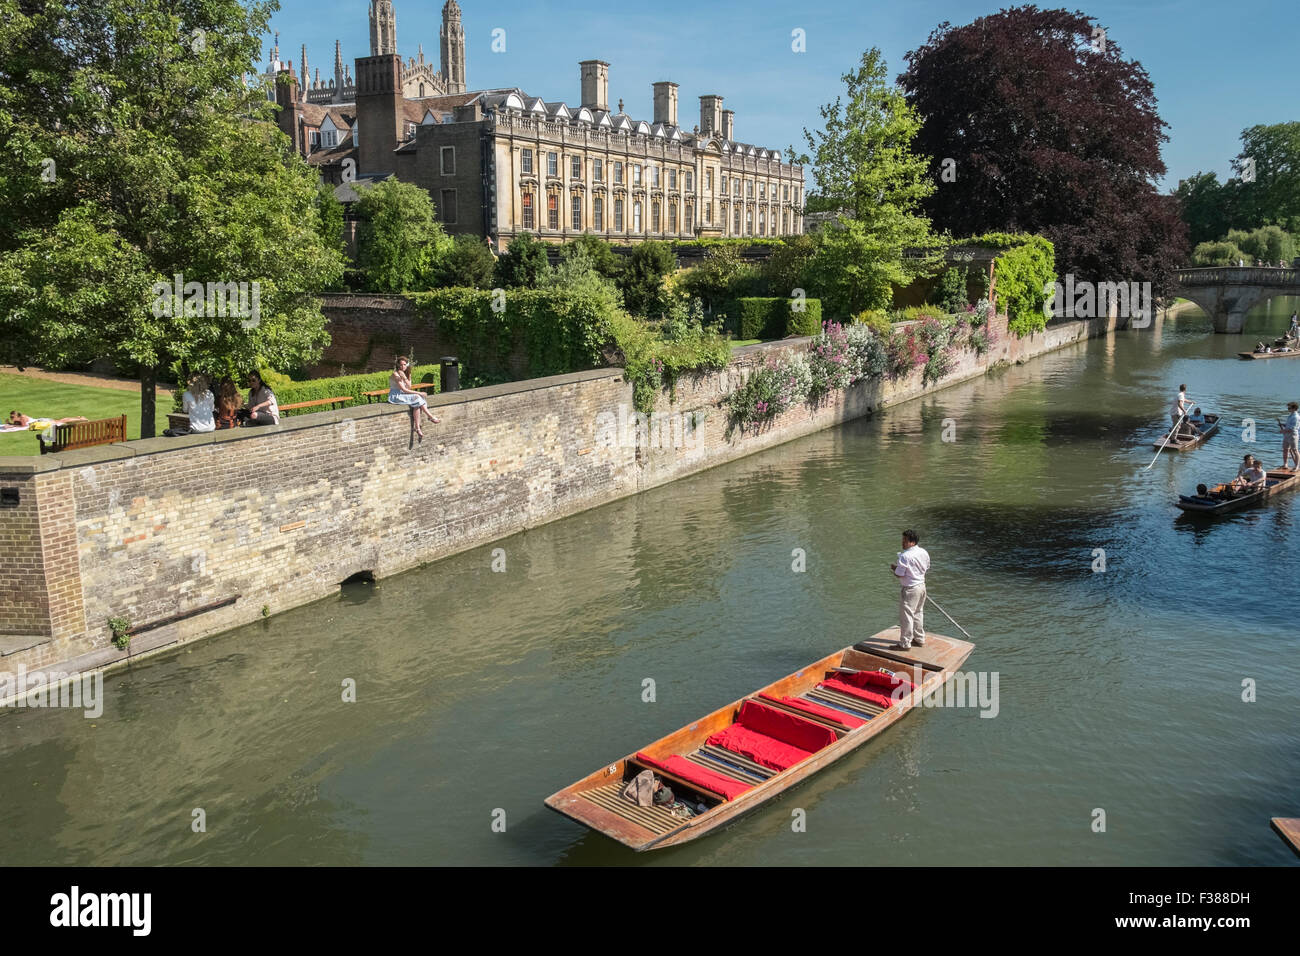 Punting on the River Cam, Cambridge, Cambridgeshire, with Clare College building and gardens in the background. - Stock Image